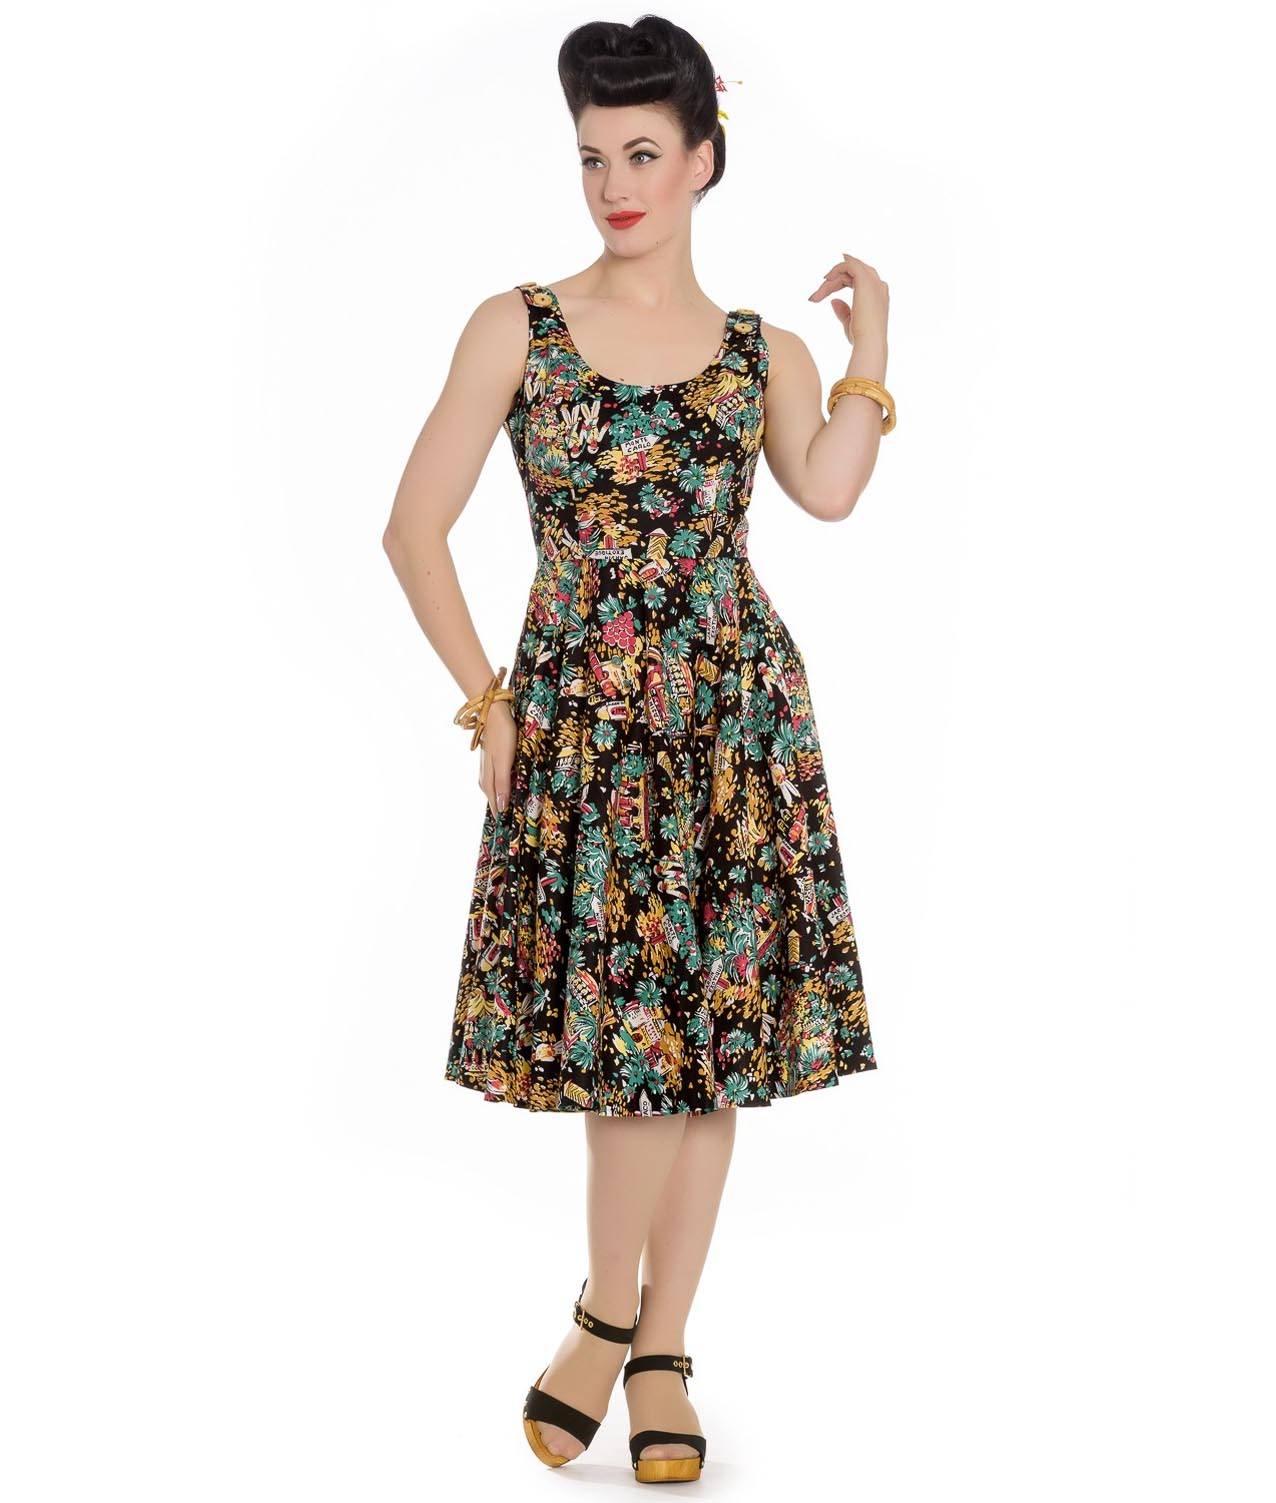 Hell-Bunny-Summer-50s-Black-Dress-MONTE-CARLO-Tropical-Holiday-All-Sizes thumbnail 37